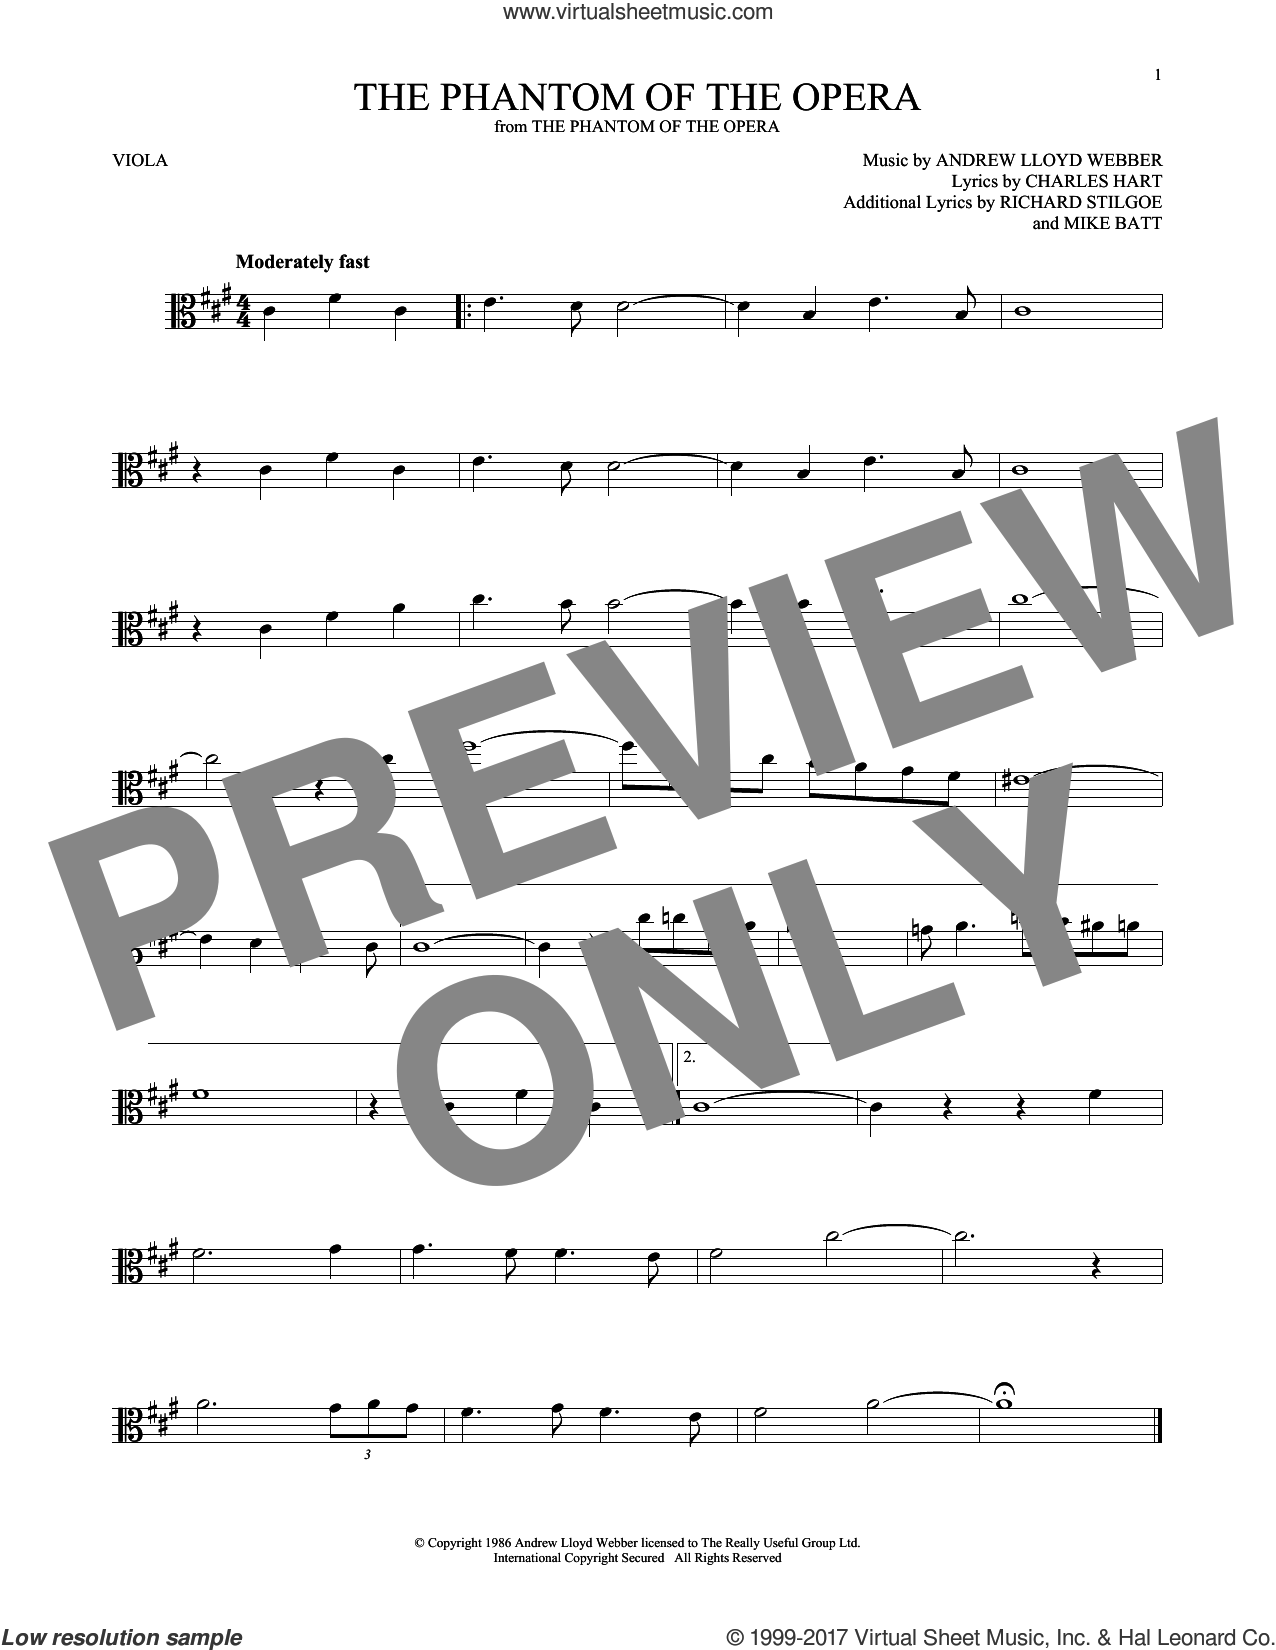 The Phantom Of The Opera sheet music for viola solo by Andrew Lloyd Webber, Charles Hart, Mike Batt and Richard Stilgoe, intermediate skill level